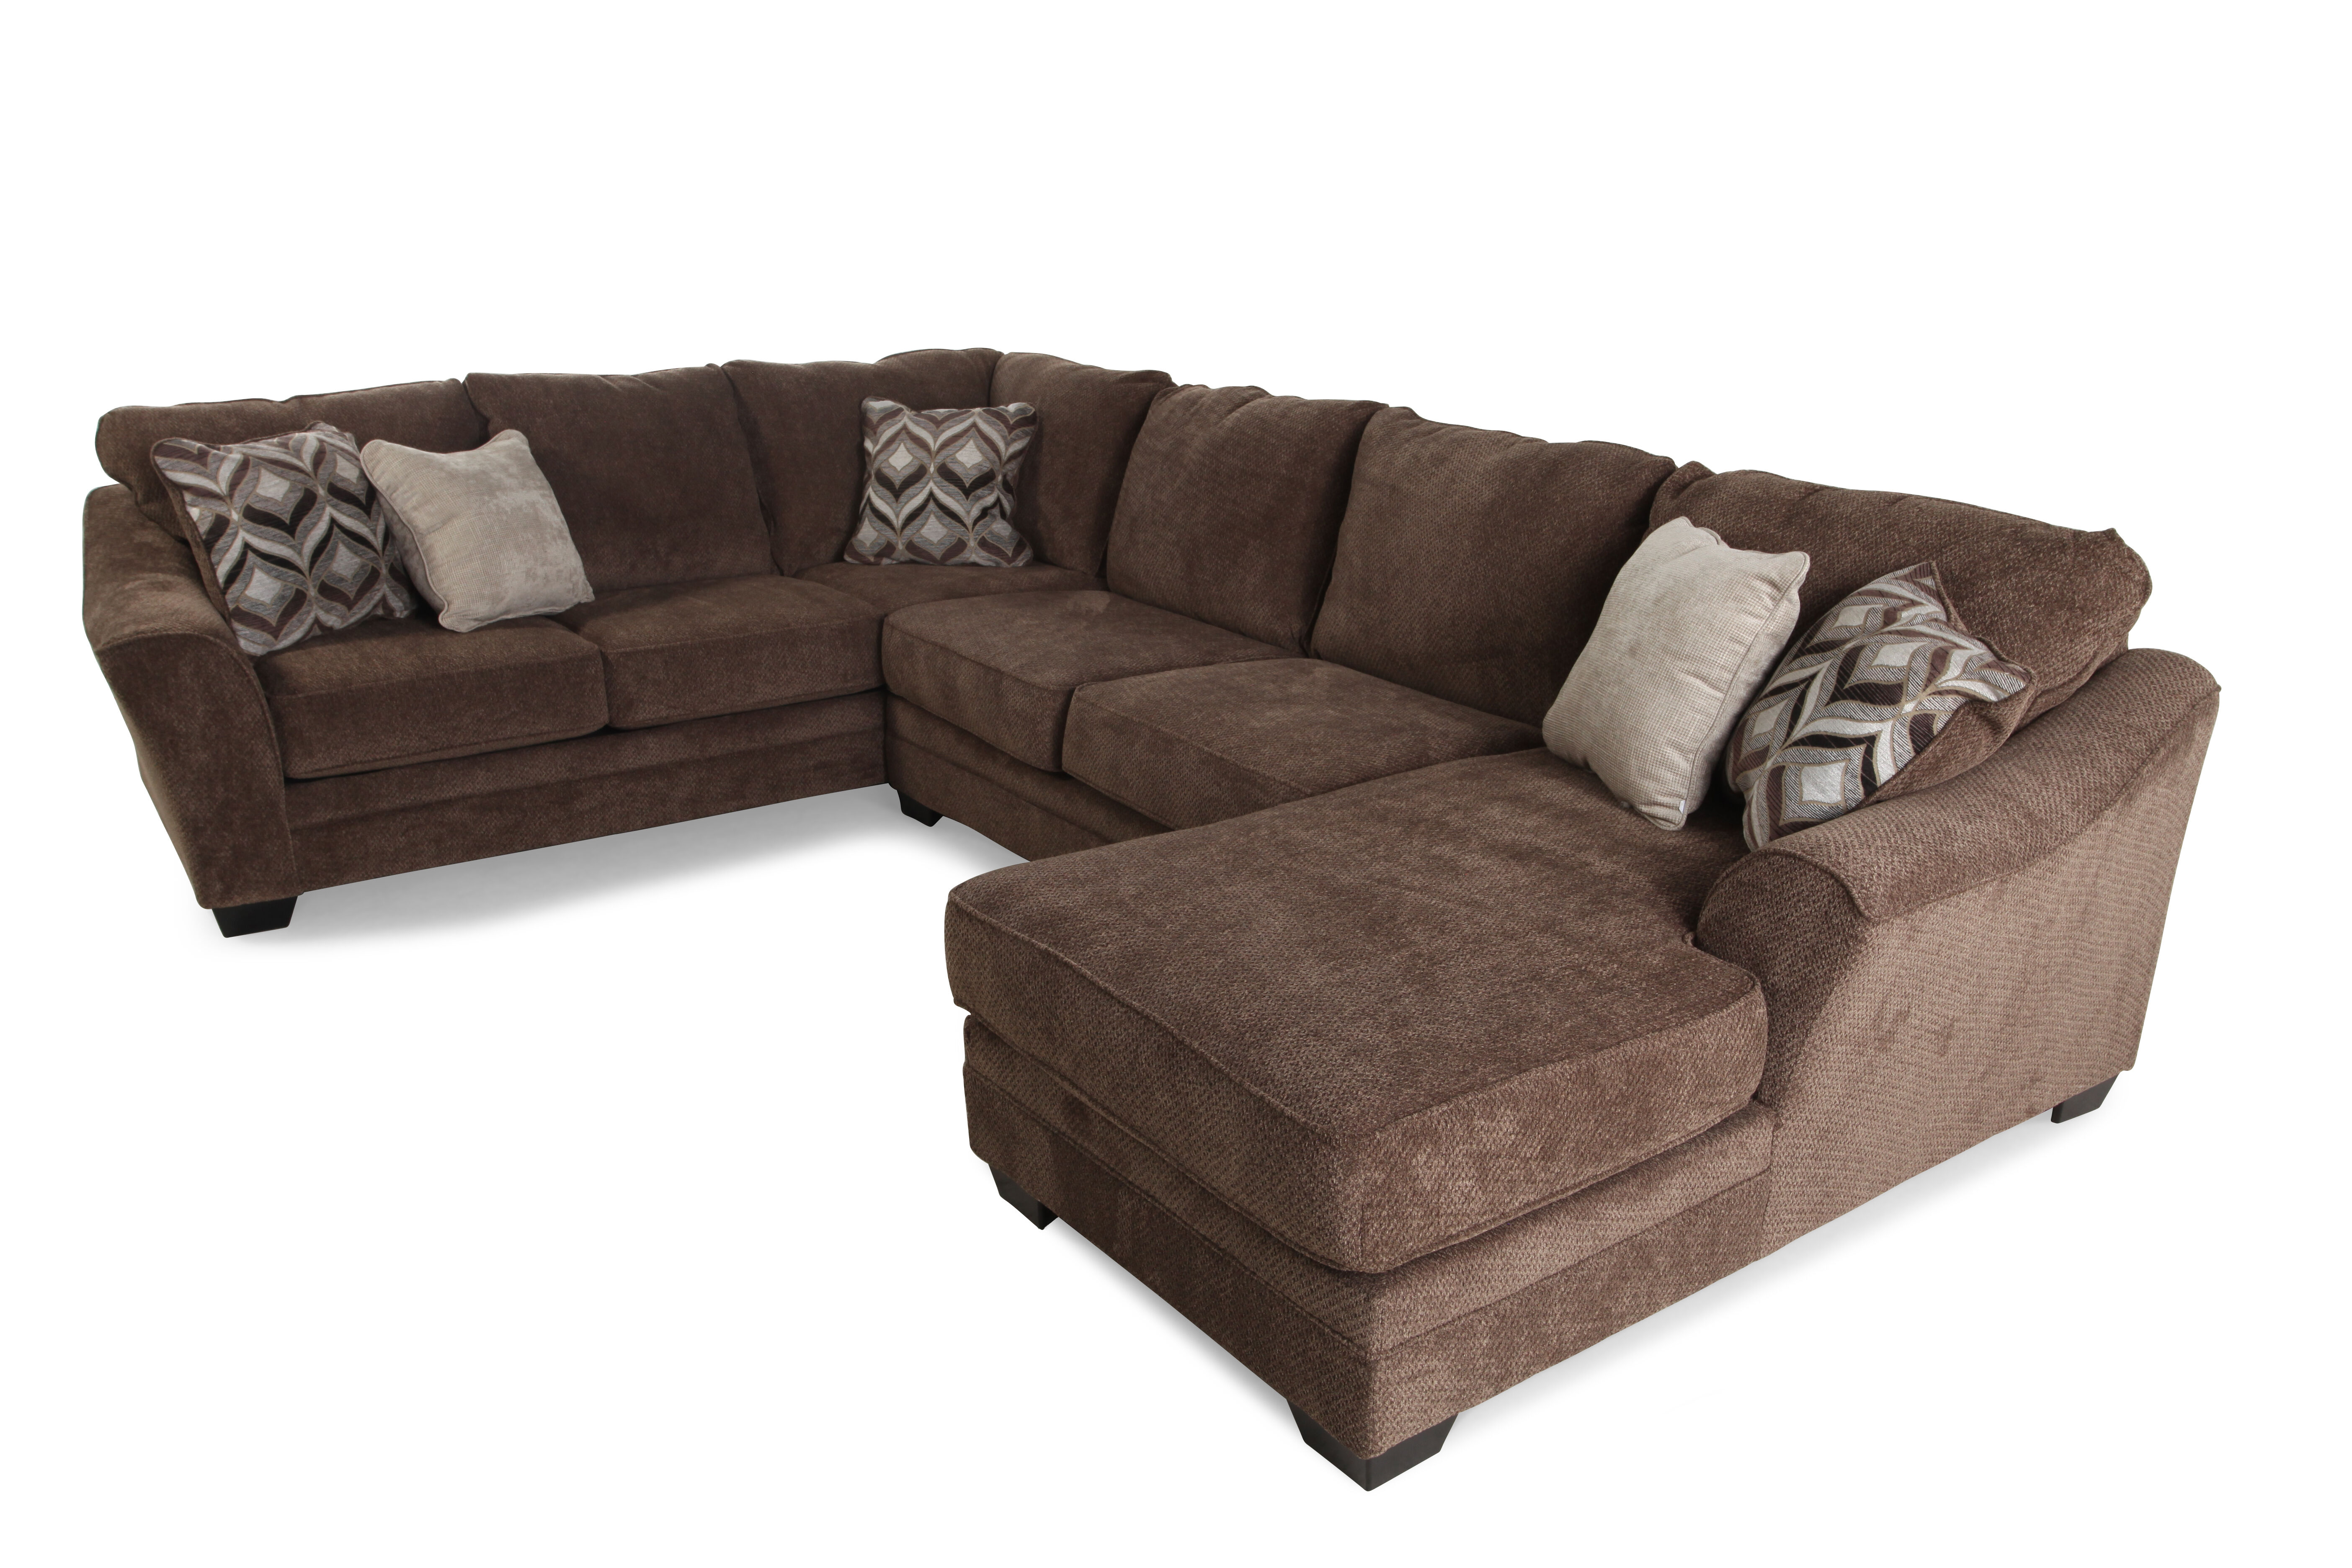 tosh furniture dark brown sofa set sears canada slipcovers three piece contemporary 101 quot sectional in